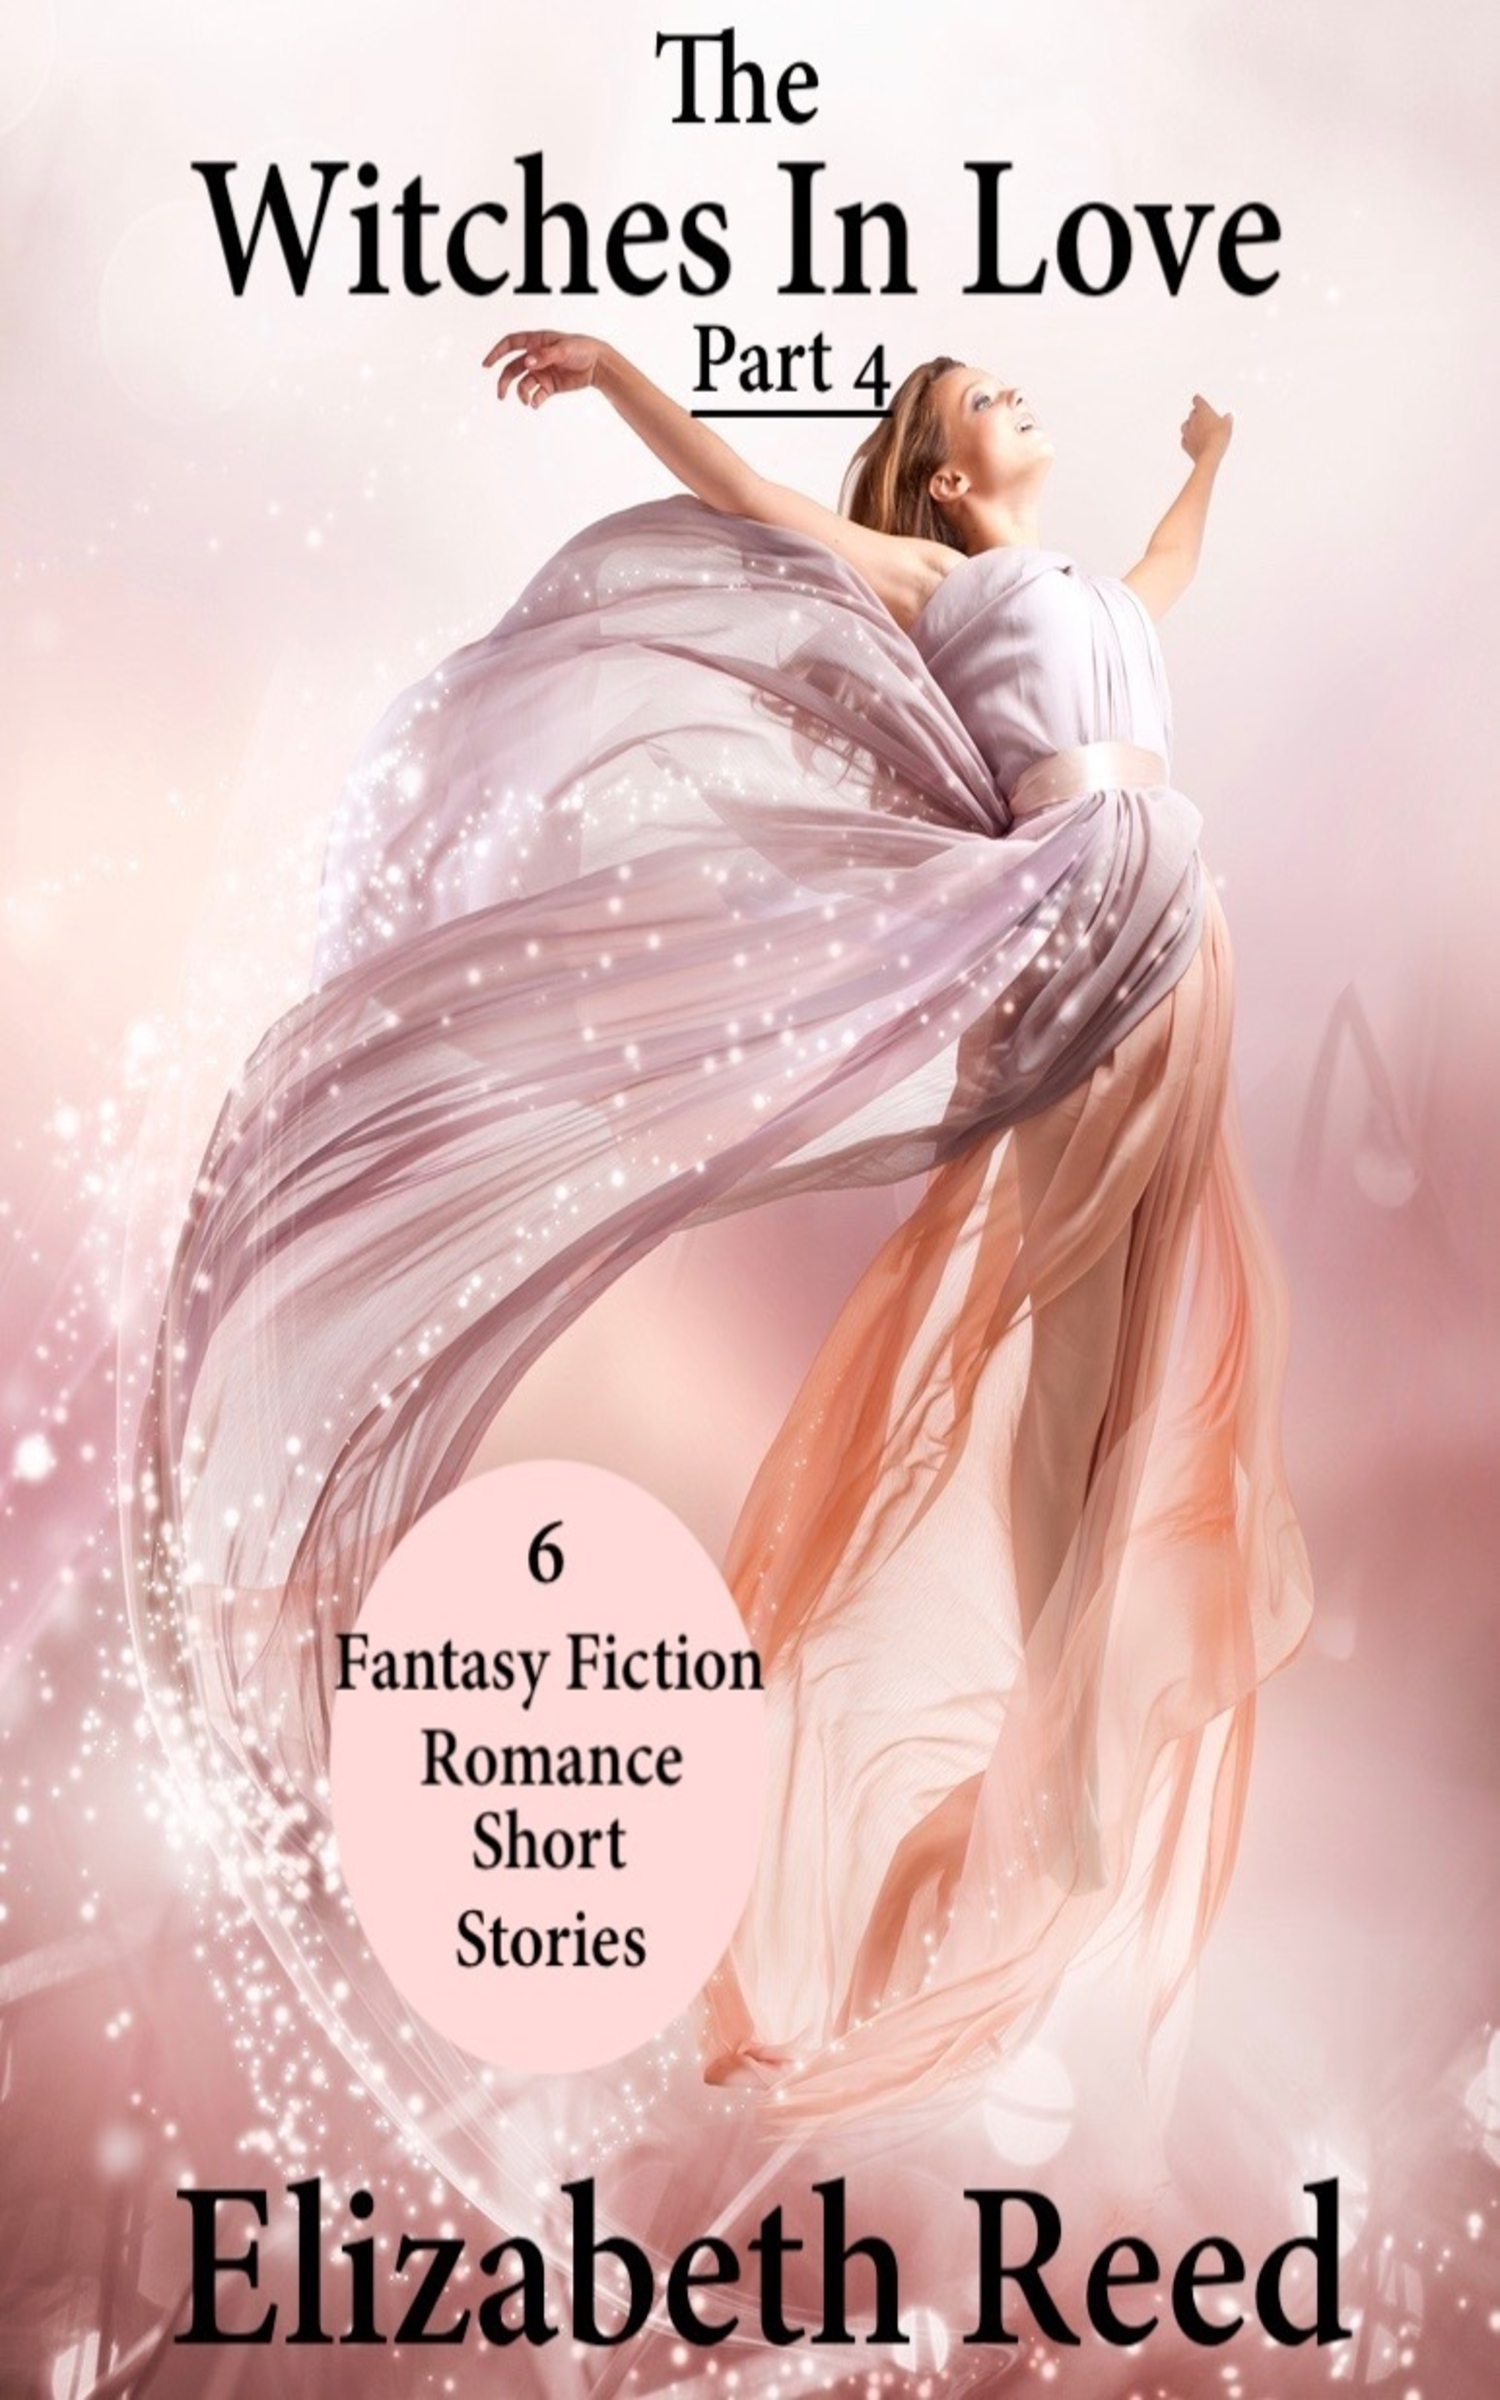 The Witches In Love Part 4: 6 Fantasy Fiction Romance Short Stories, an  Ebook by Elizabeth Reed